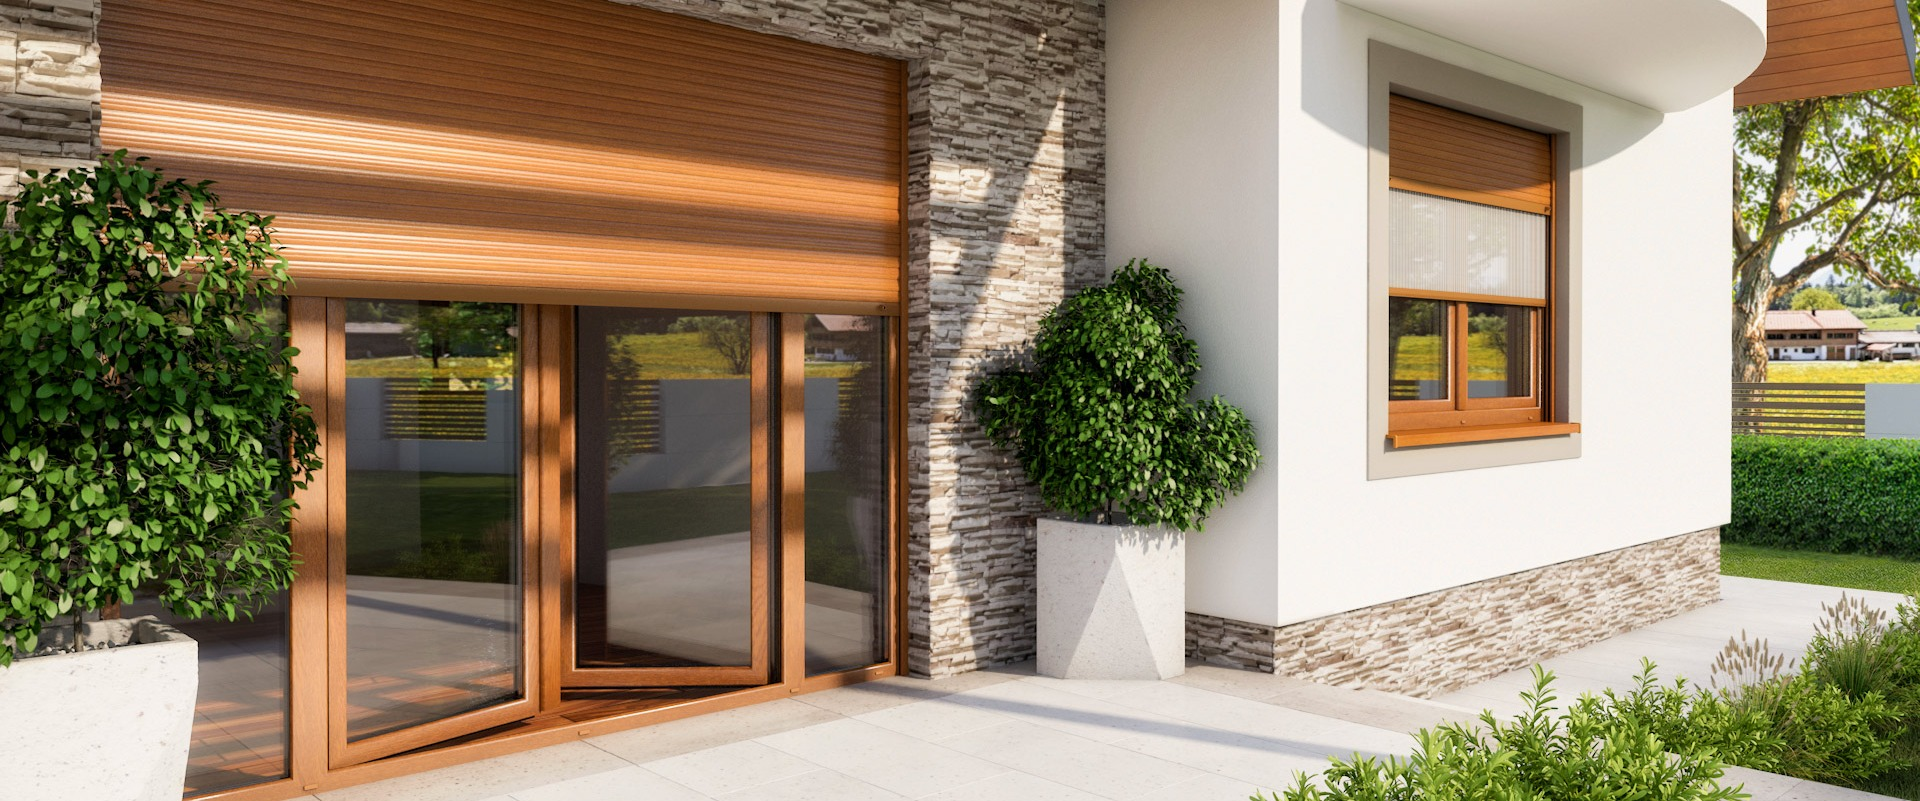 External roller shutters – a way to keep warm